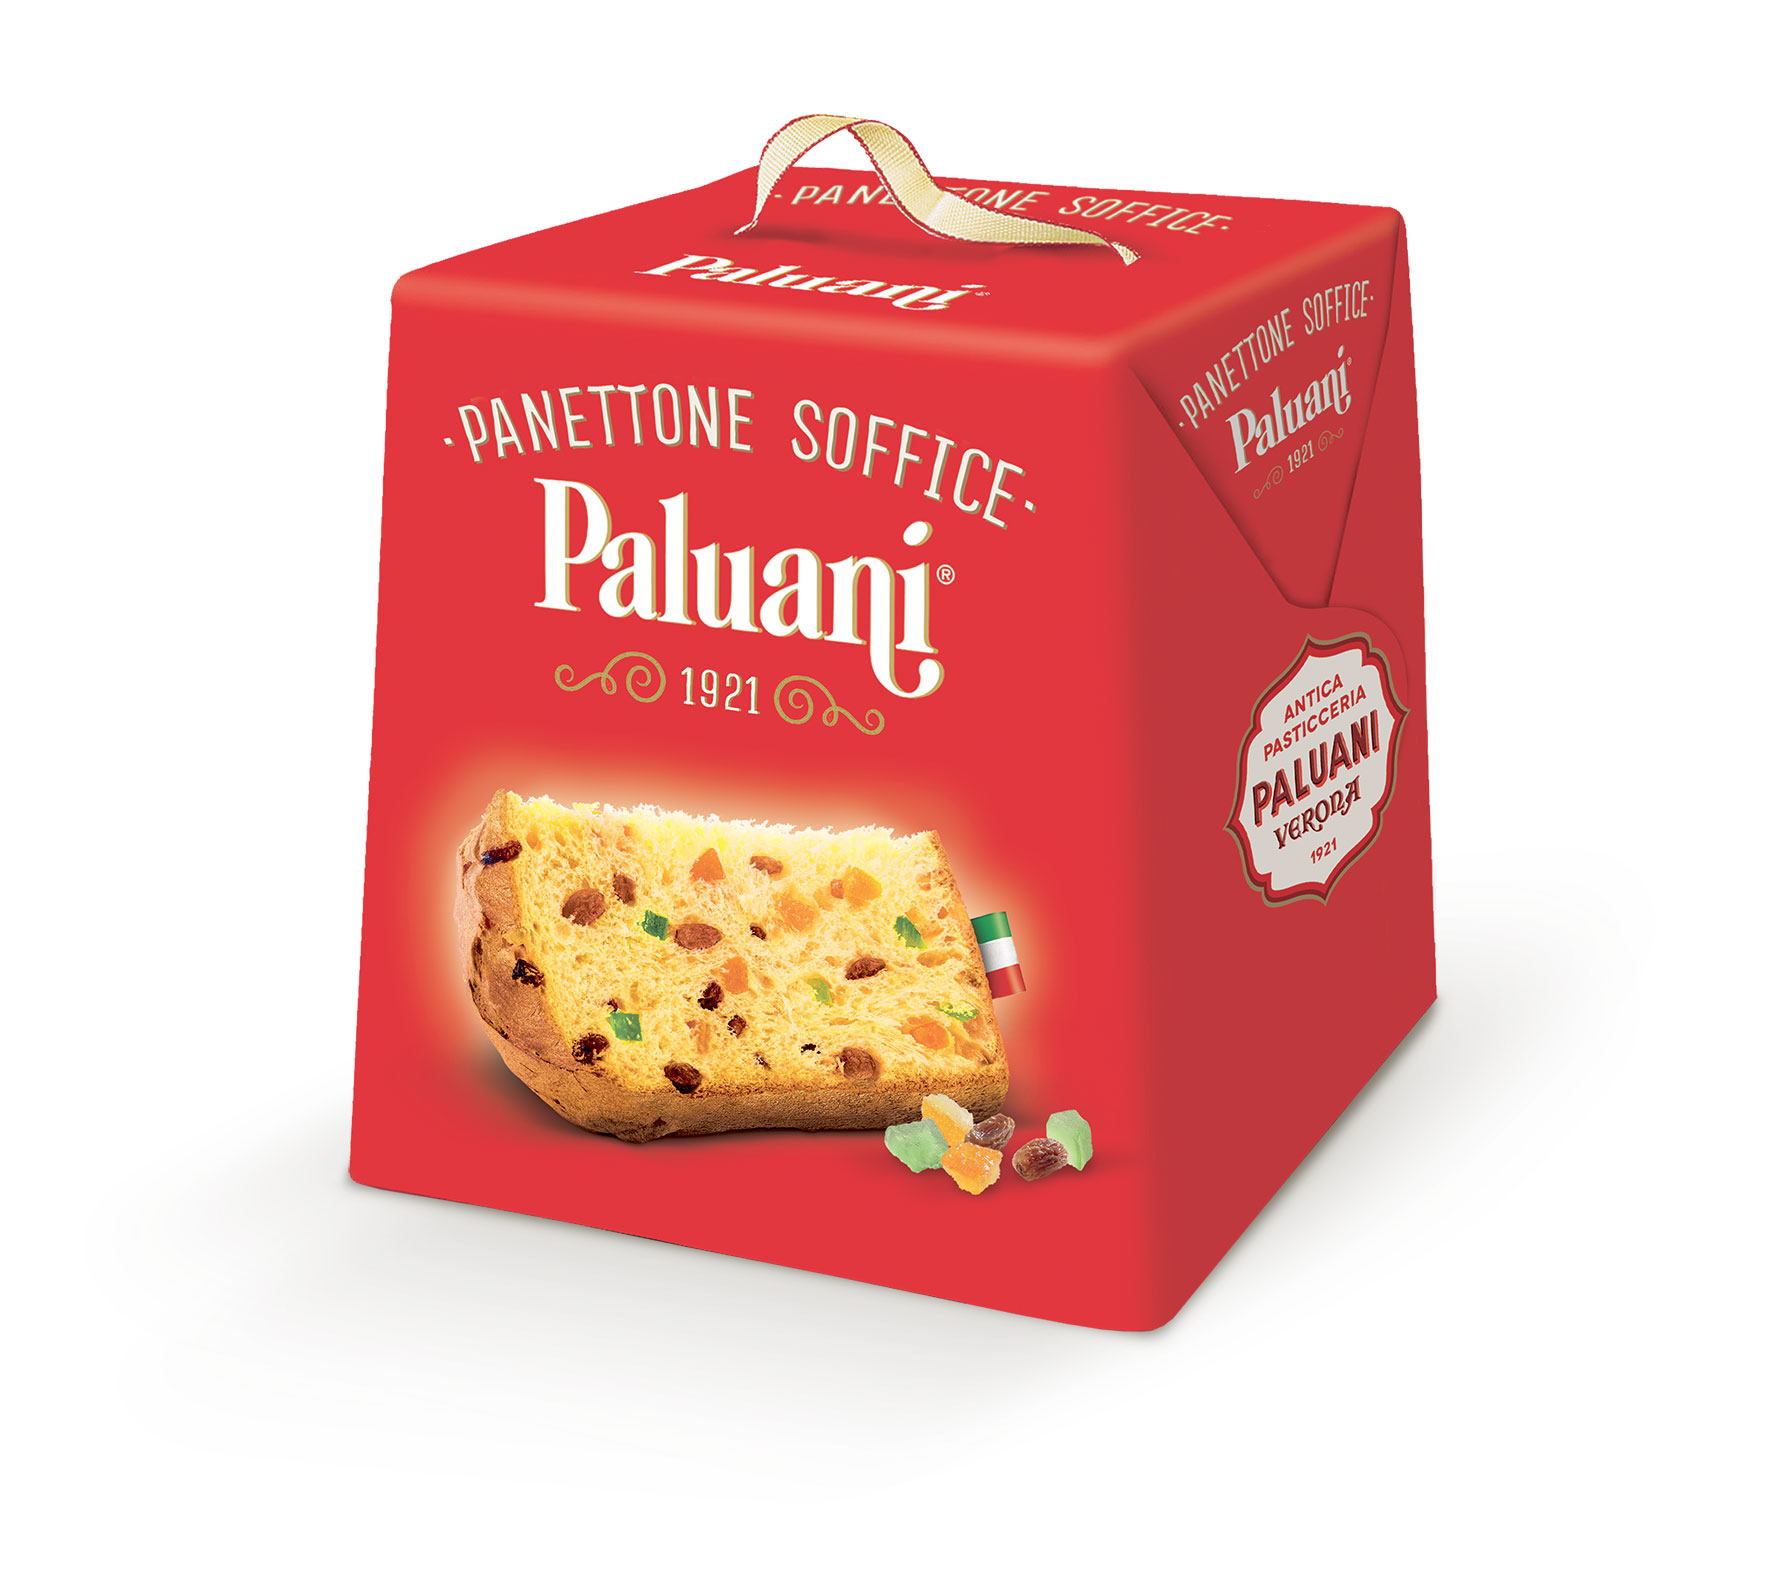 277 FORMICA-Panettone Soffice Paluani 100g